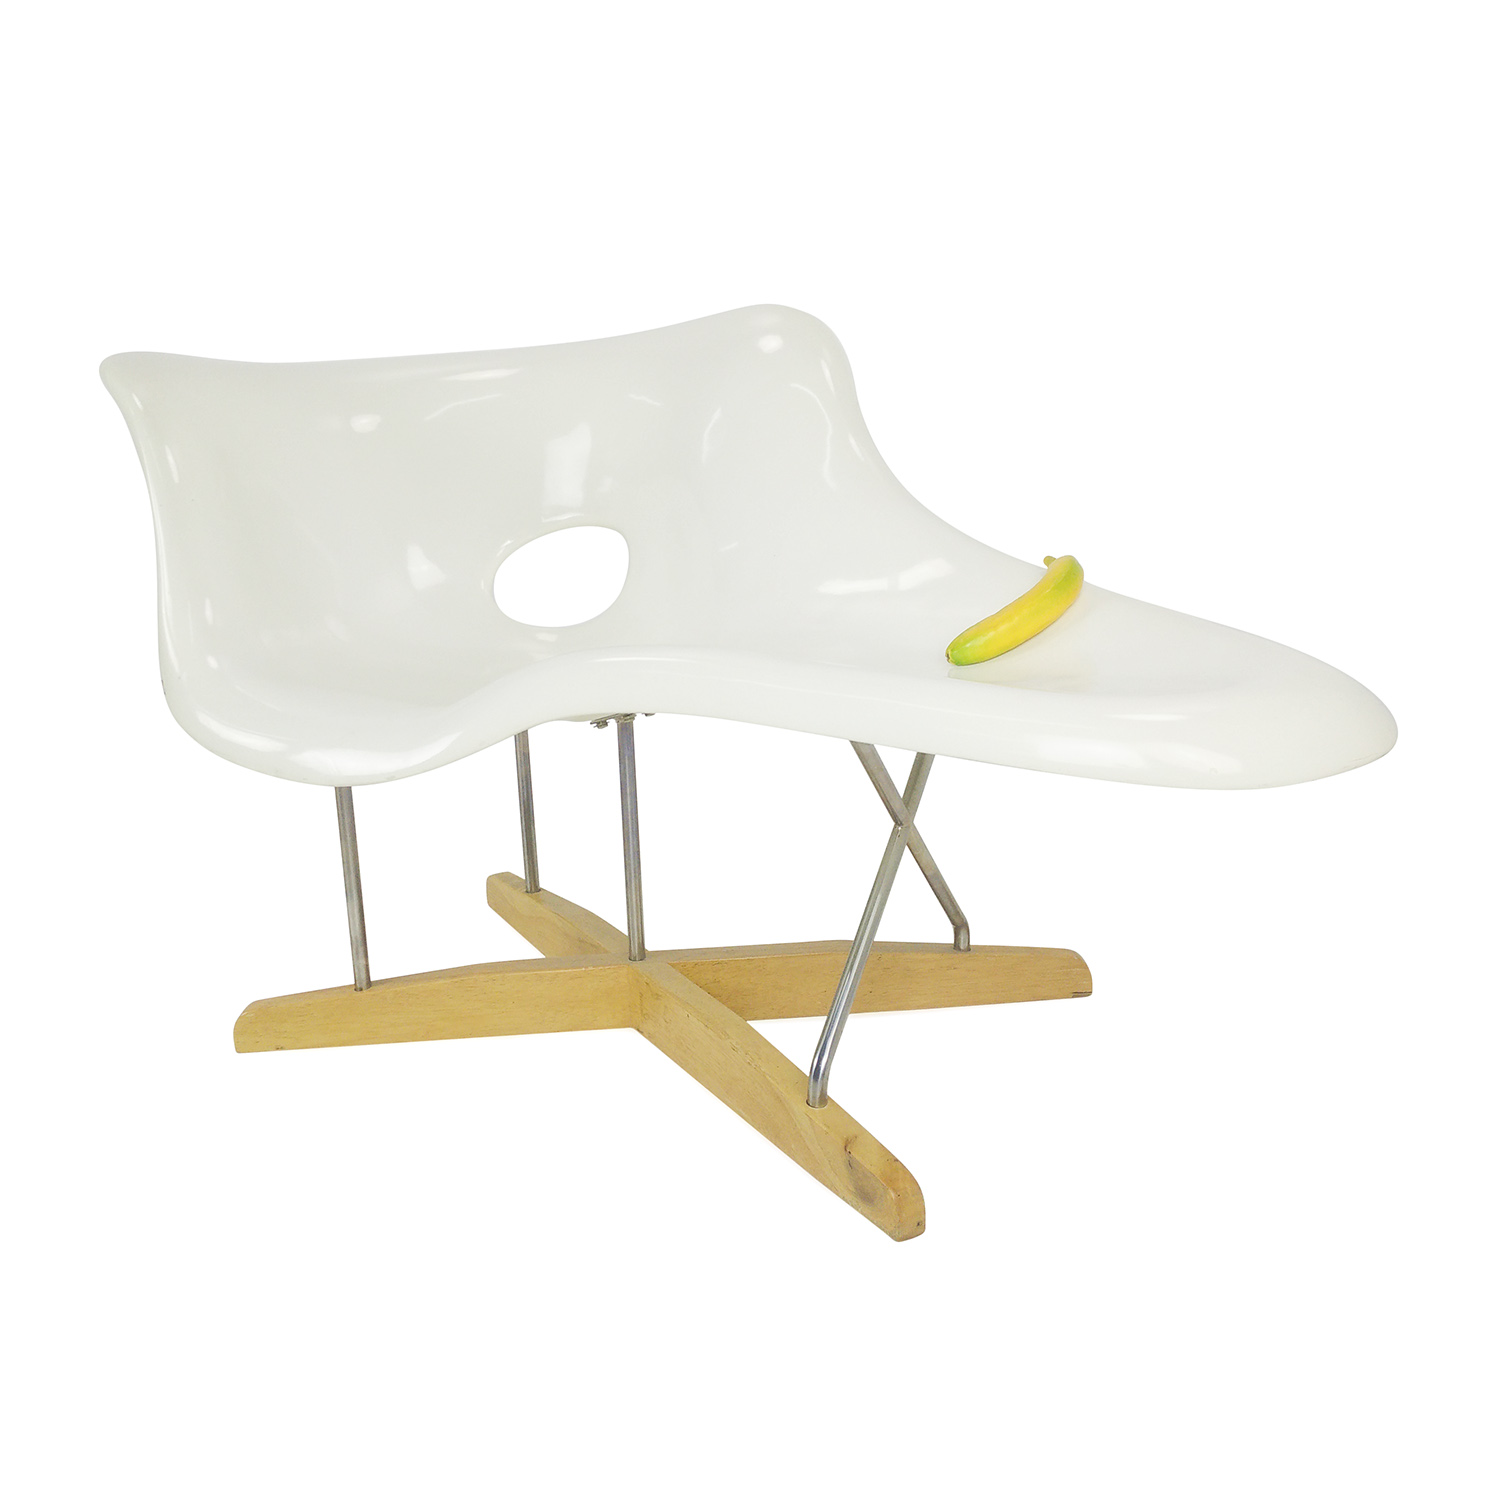 63 off eames replica of la chaise la chaise replica for Chaise imitation charles eames